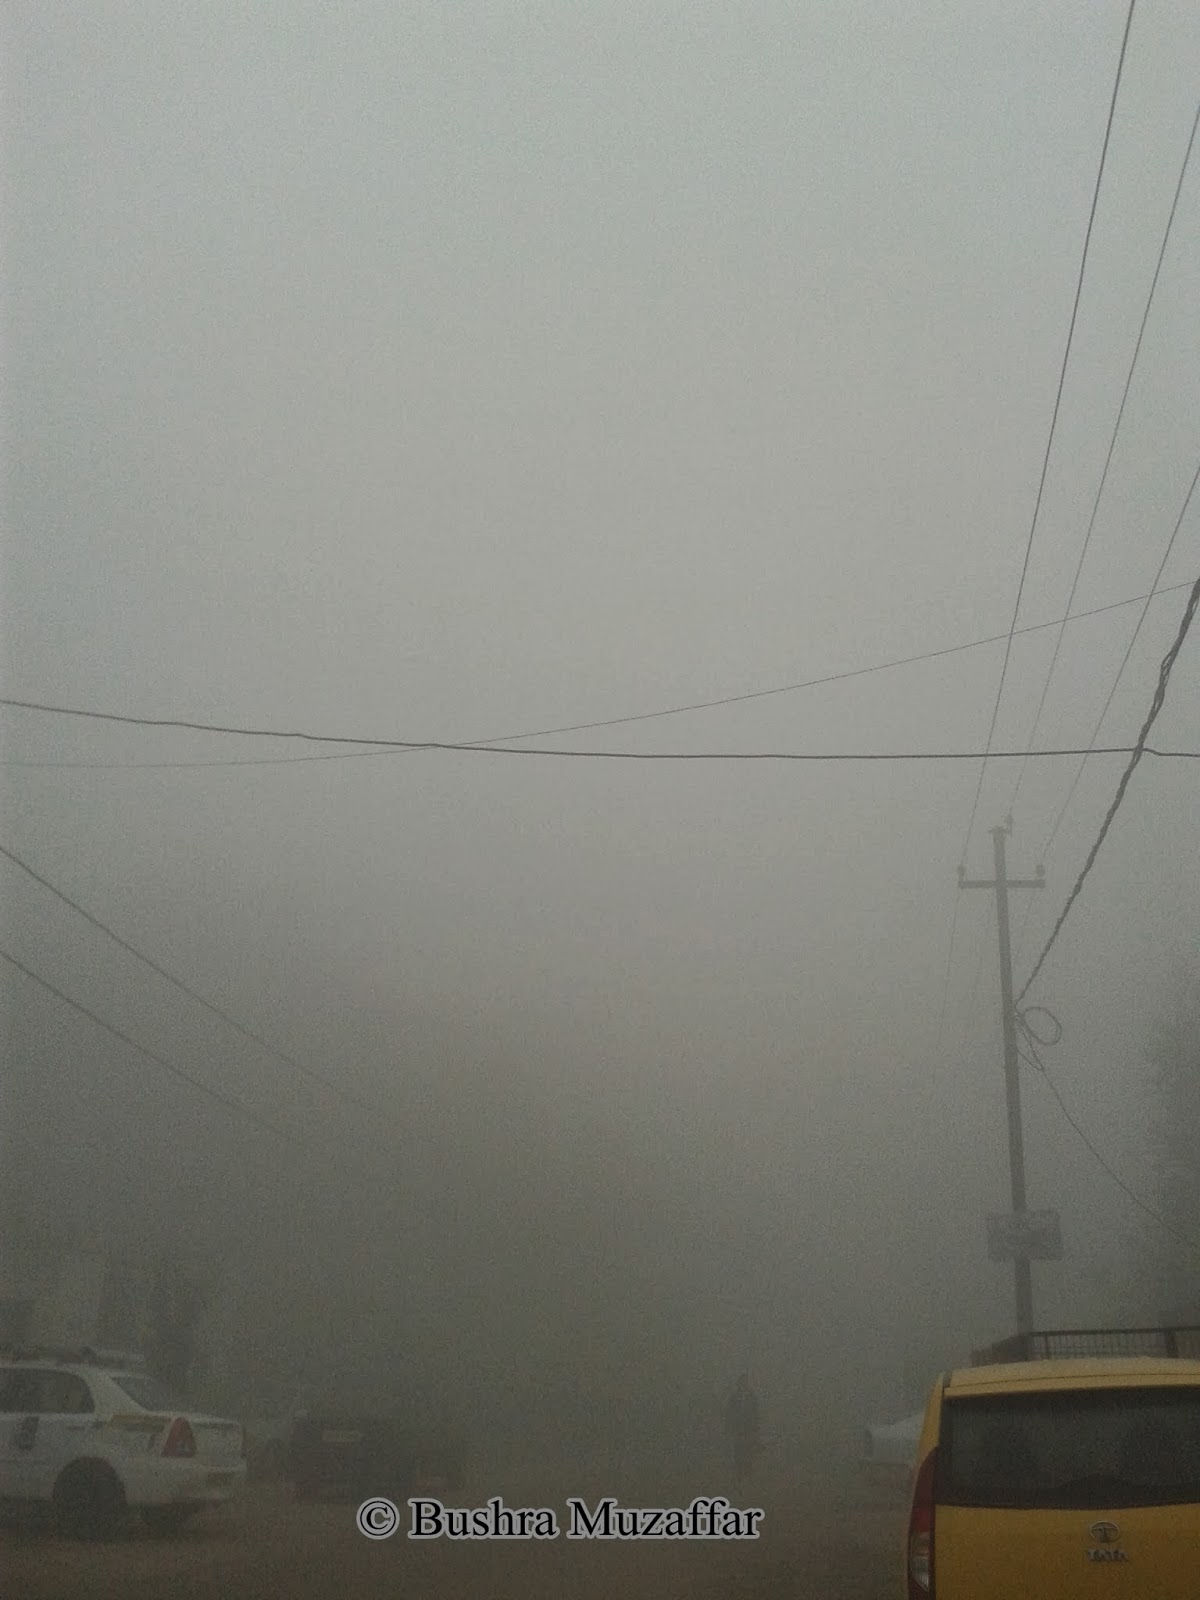 Dense Fog of the Season